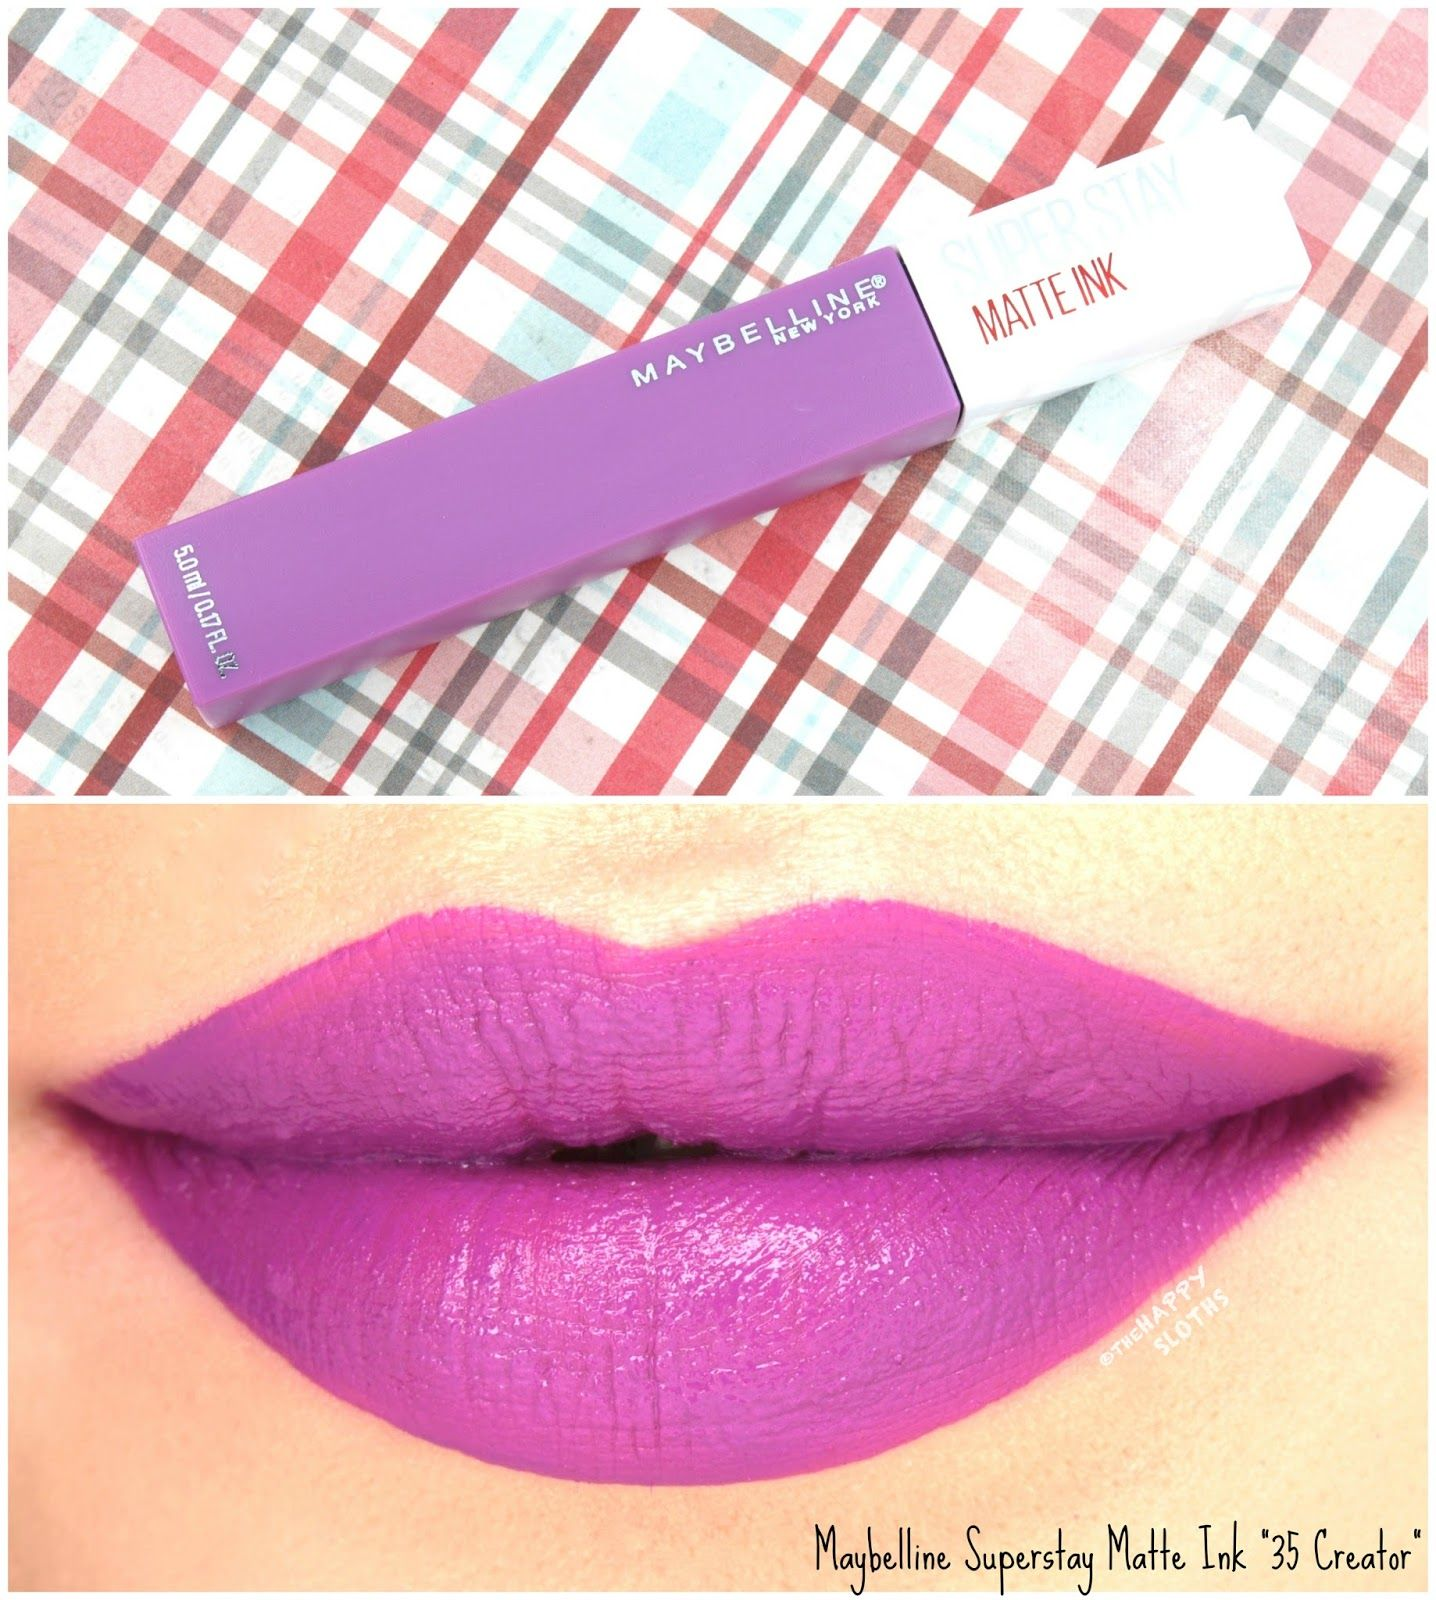 Maybelline superstay matte ink liquid lipstick 35 creator review and swatches